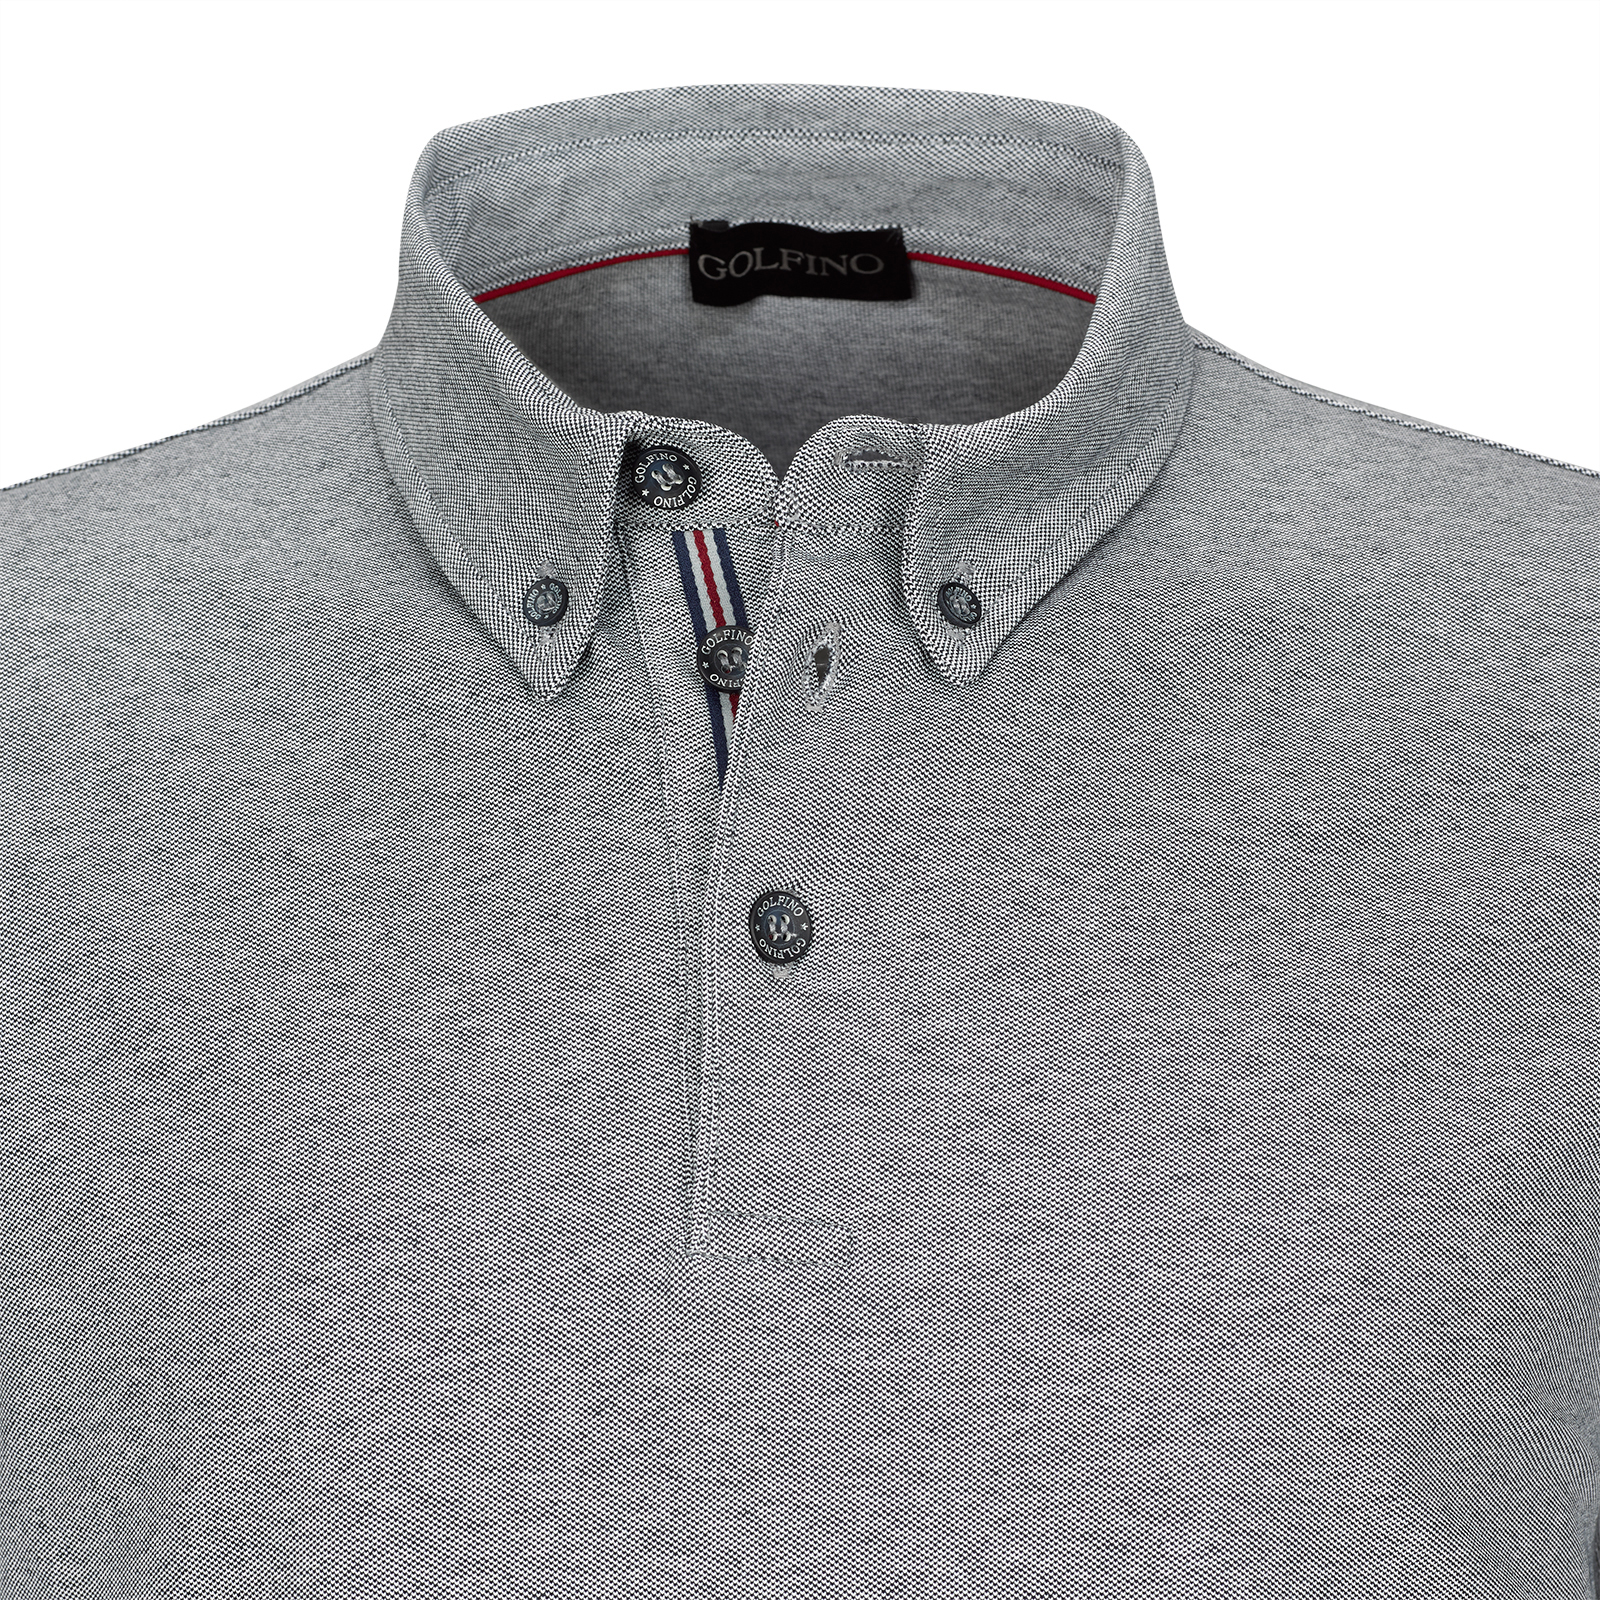 Herren Langarm Stretch-Golfpolo mit Sun Protection und Button Down Kragen